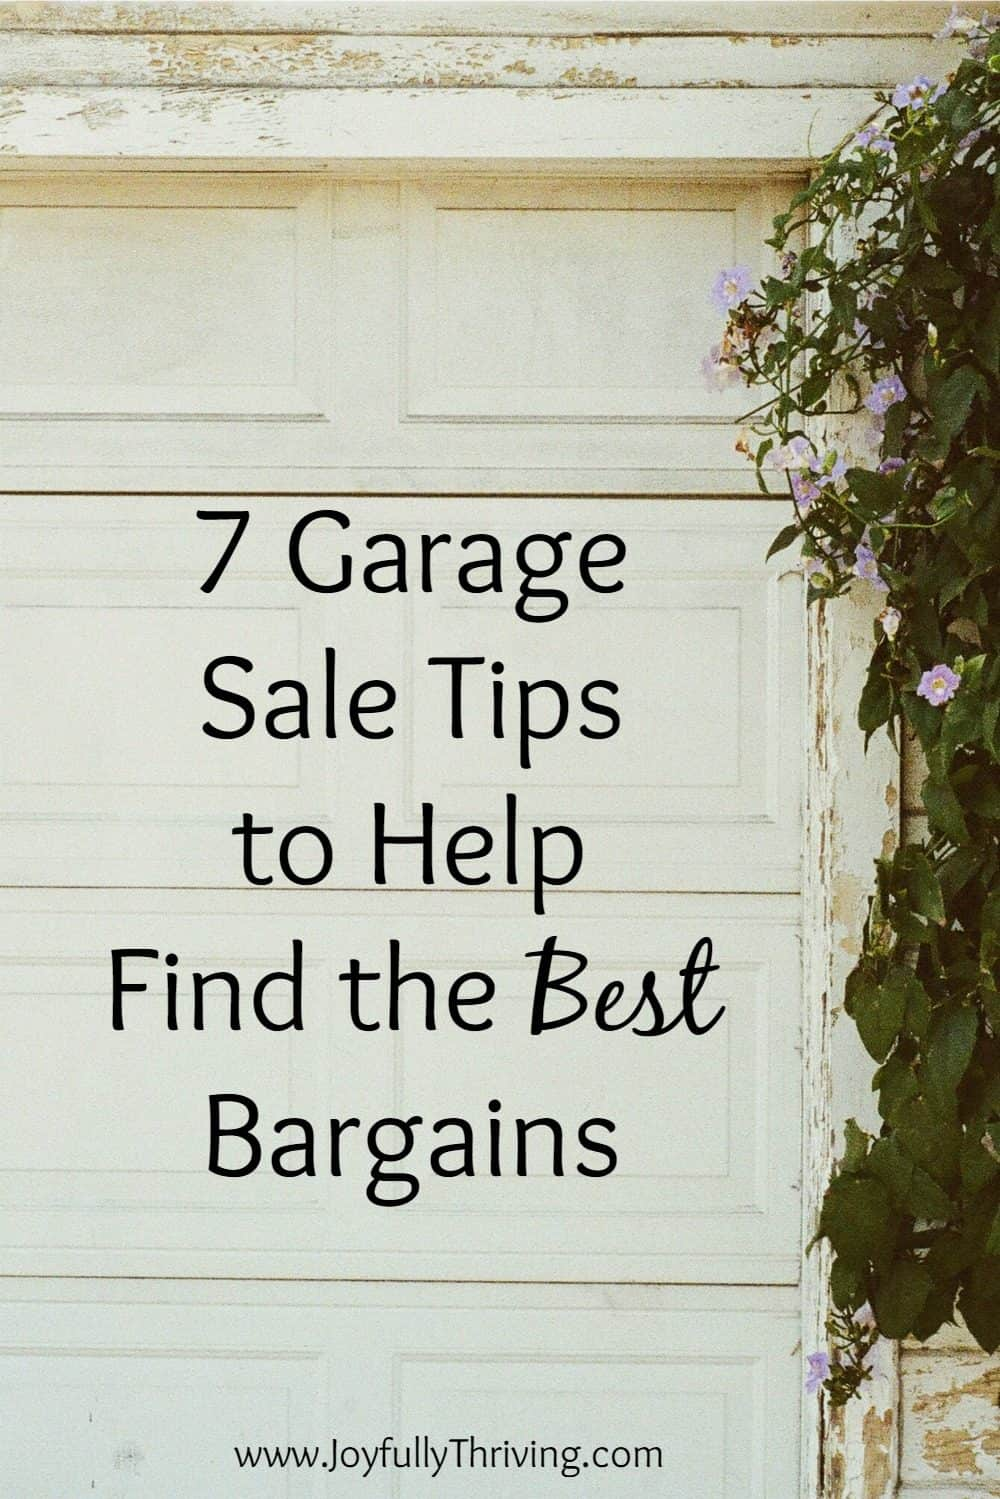 I love garage sales! Good garage sale tips here, especially number 1.